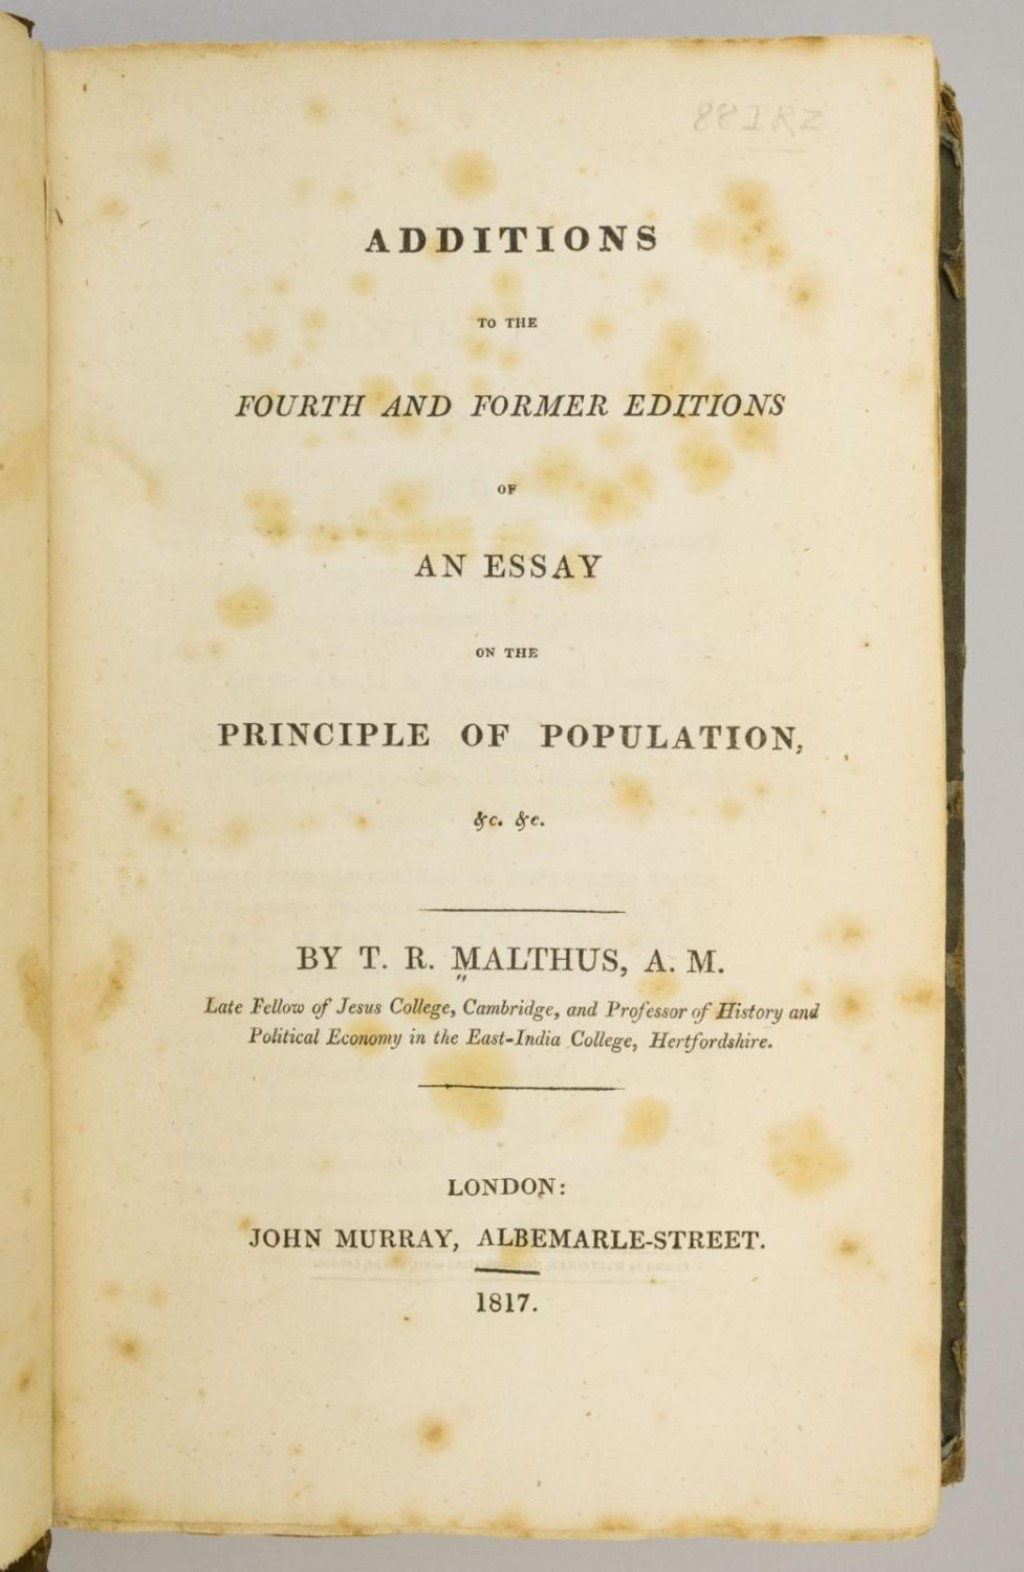 002 Essay Example On The Principle Of Population 5337830061 2 Singular Thomas Malthus Sparknotes Advocated Ap Euro Large